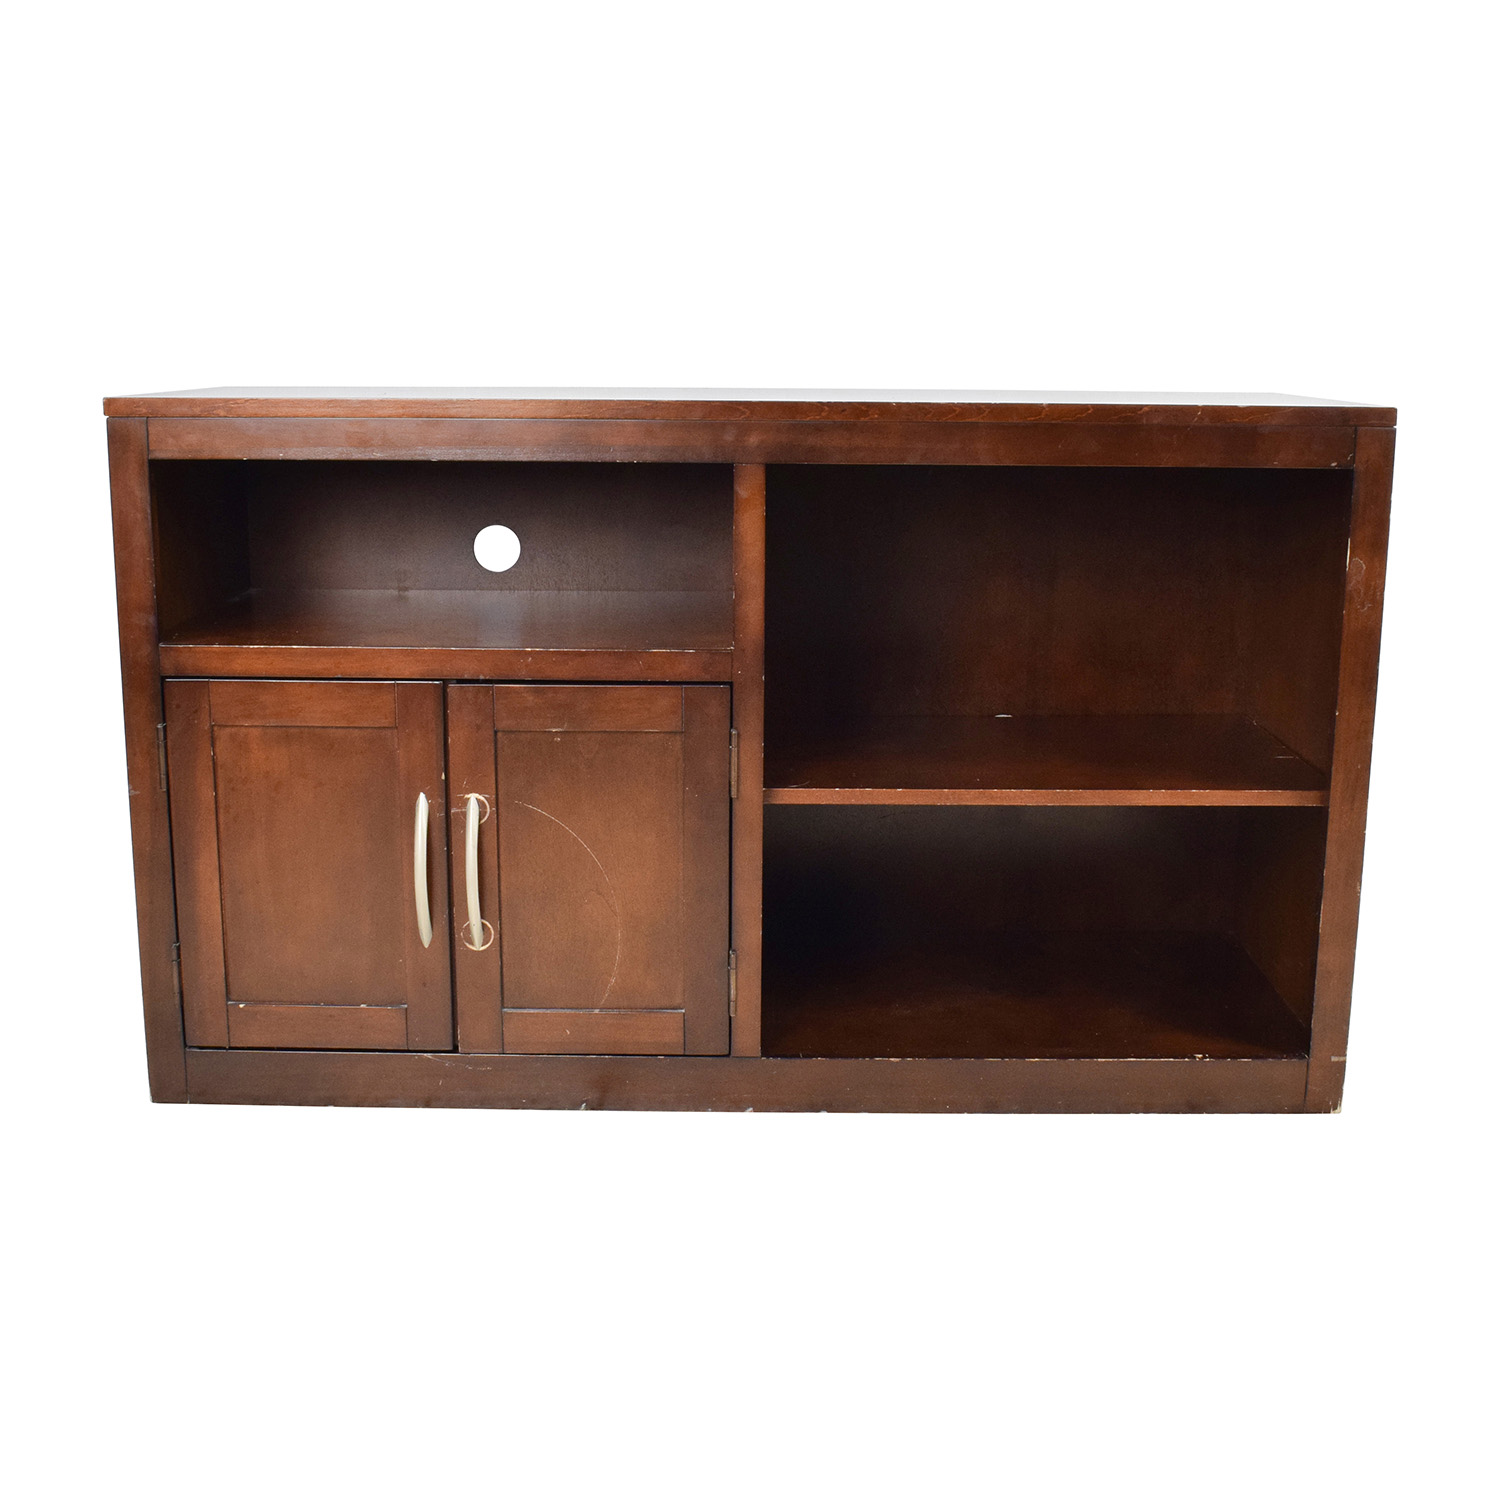 Quality storage under 500 for Tv media storage cabinet